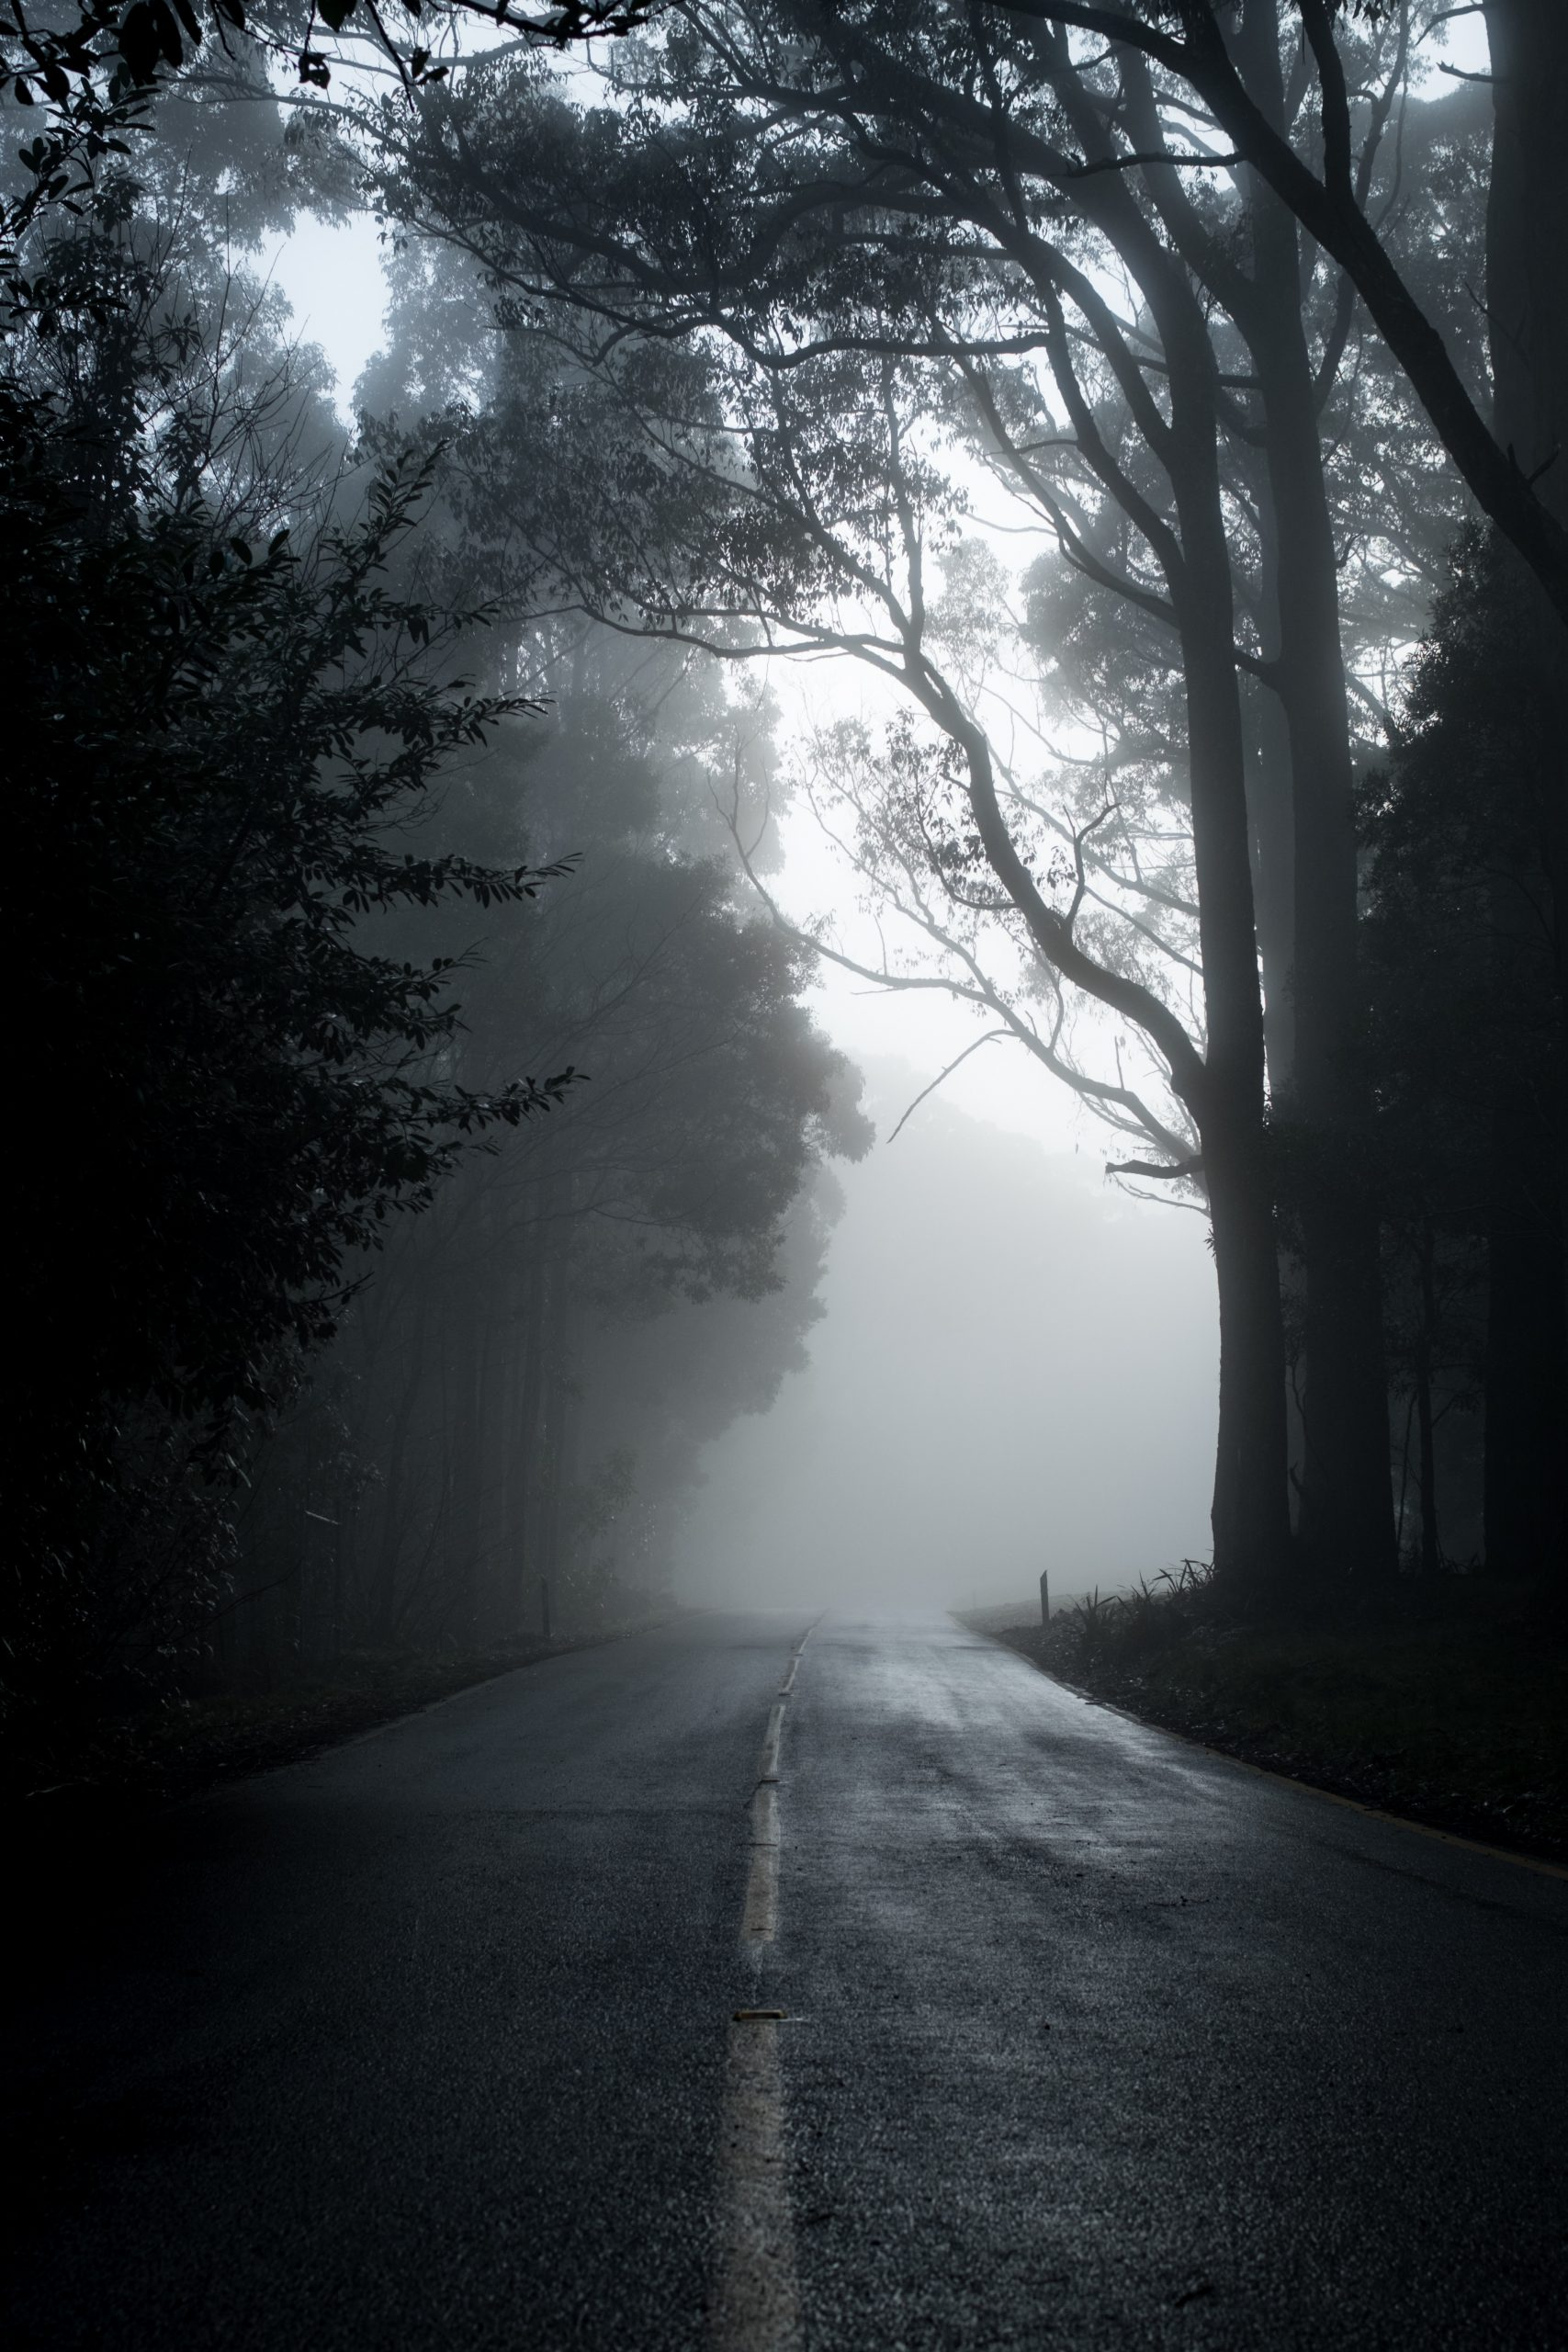 wallpaper Gray road in between trees in grayscale photography